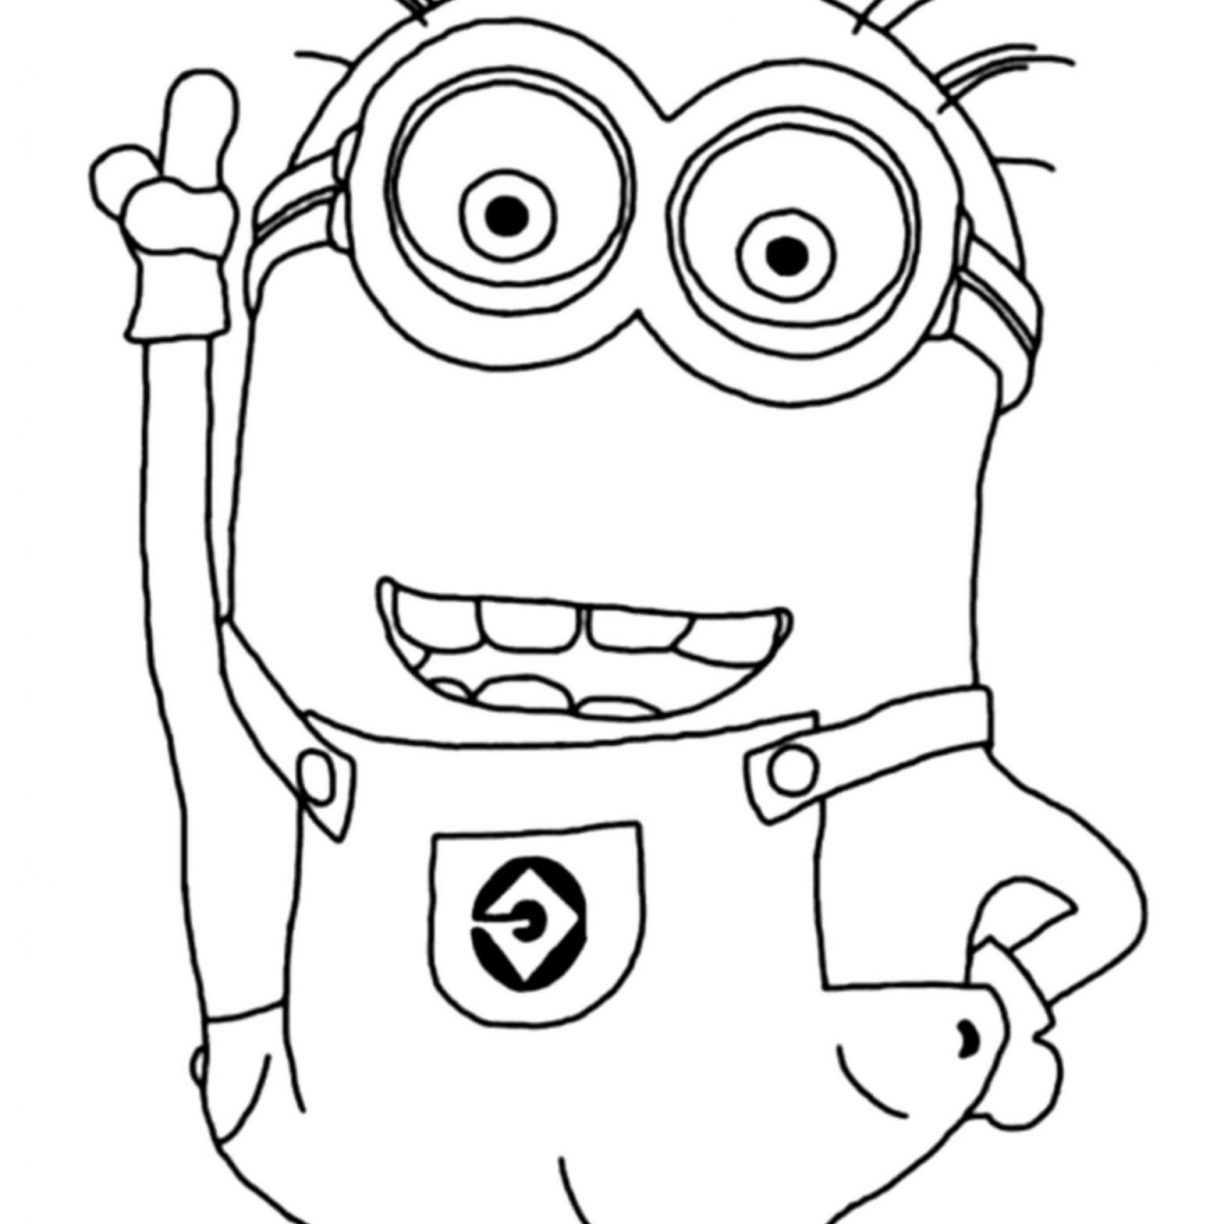 minion kevin coloring pages minion kevin coloring pages minion coloring kevin pages